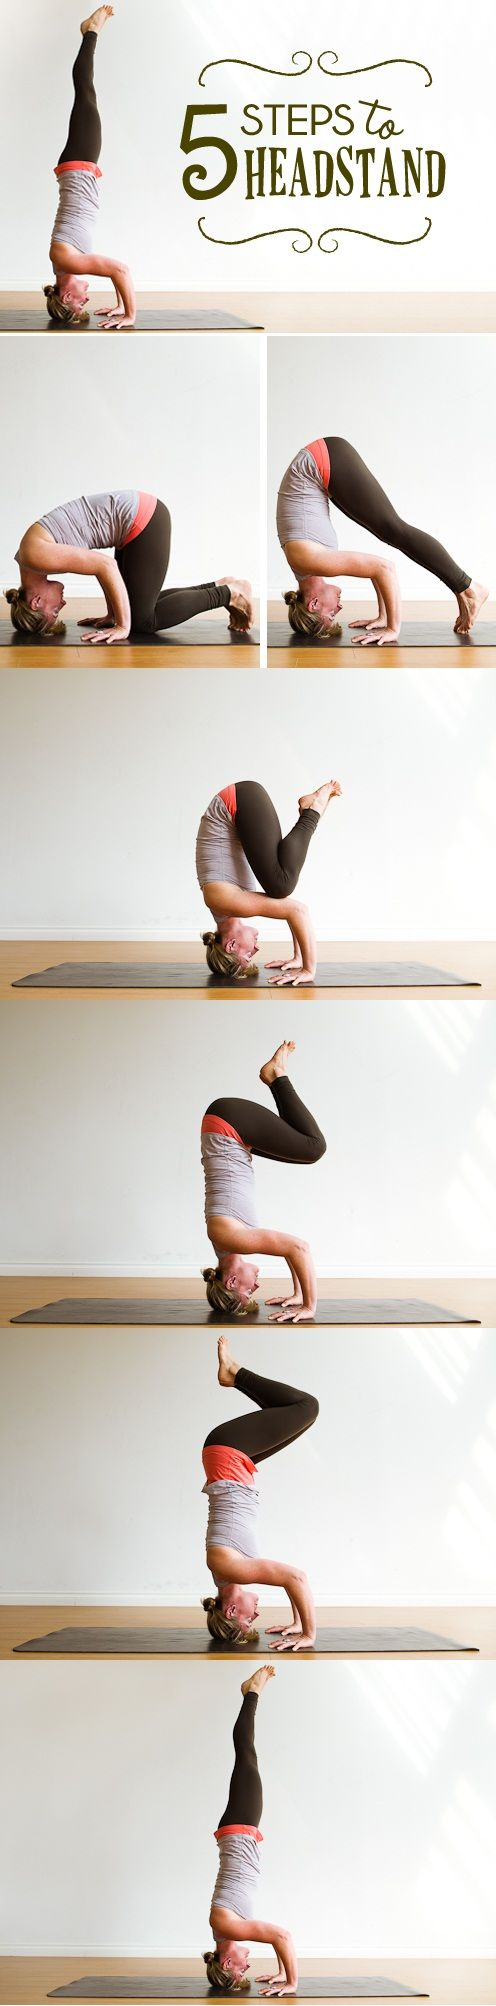 5 Simple Steps to Head Stand